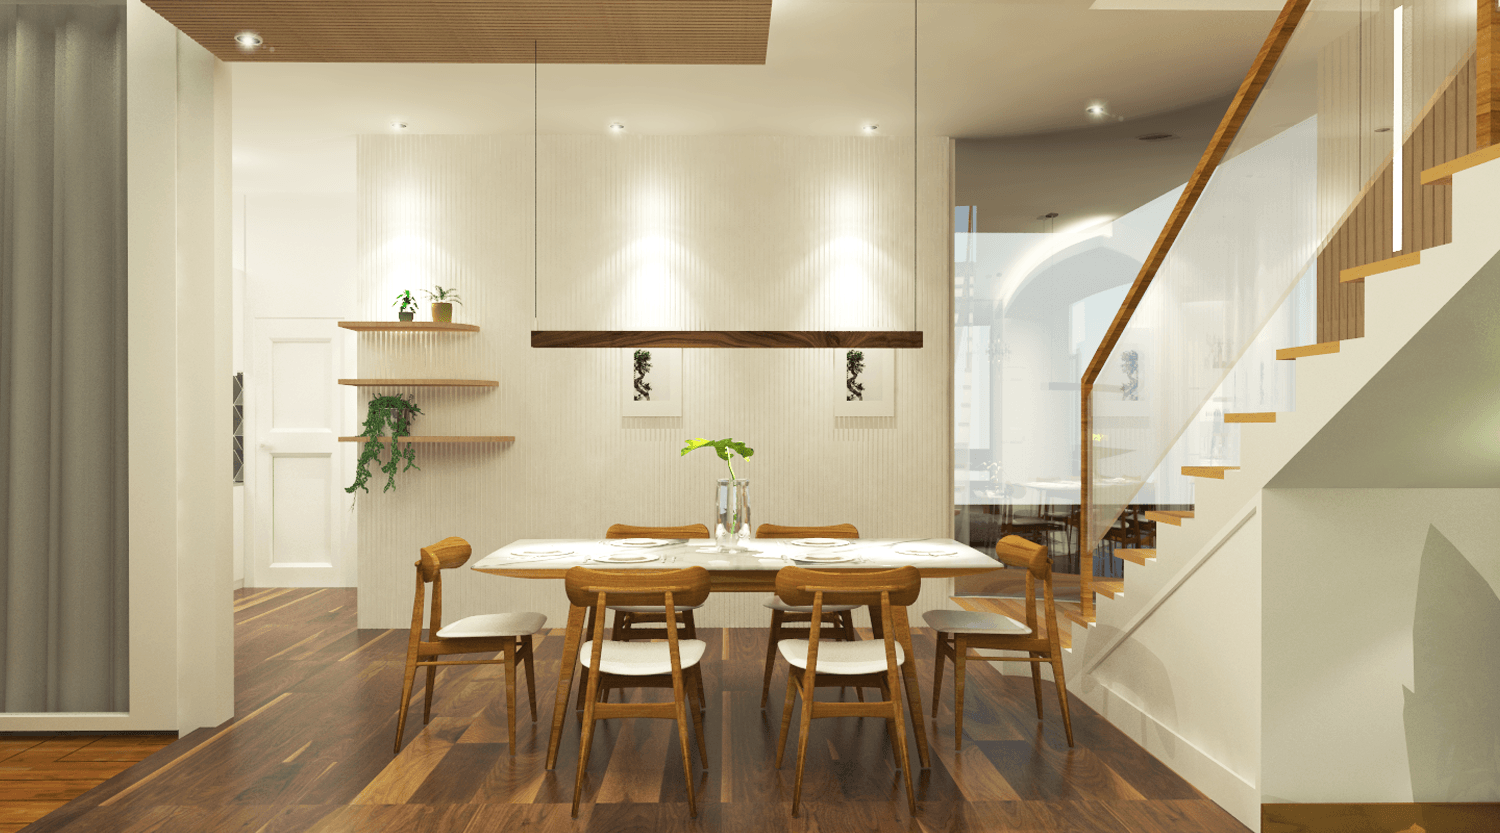 Mimo Home Interior Design & Build Private House 0 Karawang Karawang, East Karawang, Karawang Regency, West Java, Indonesia Karawang, East Karawang, Karawang Regency, West Java, Indonesia Dining Area   33239